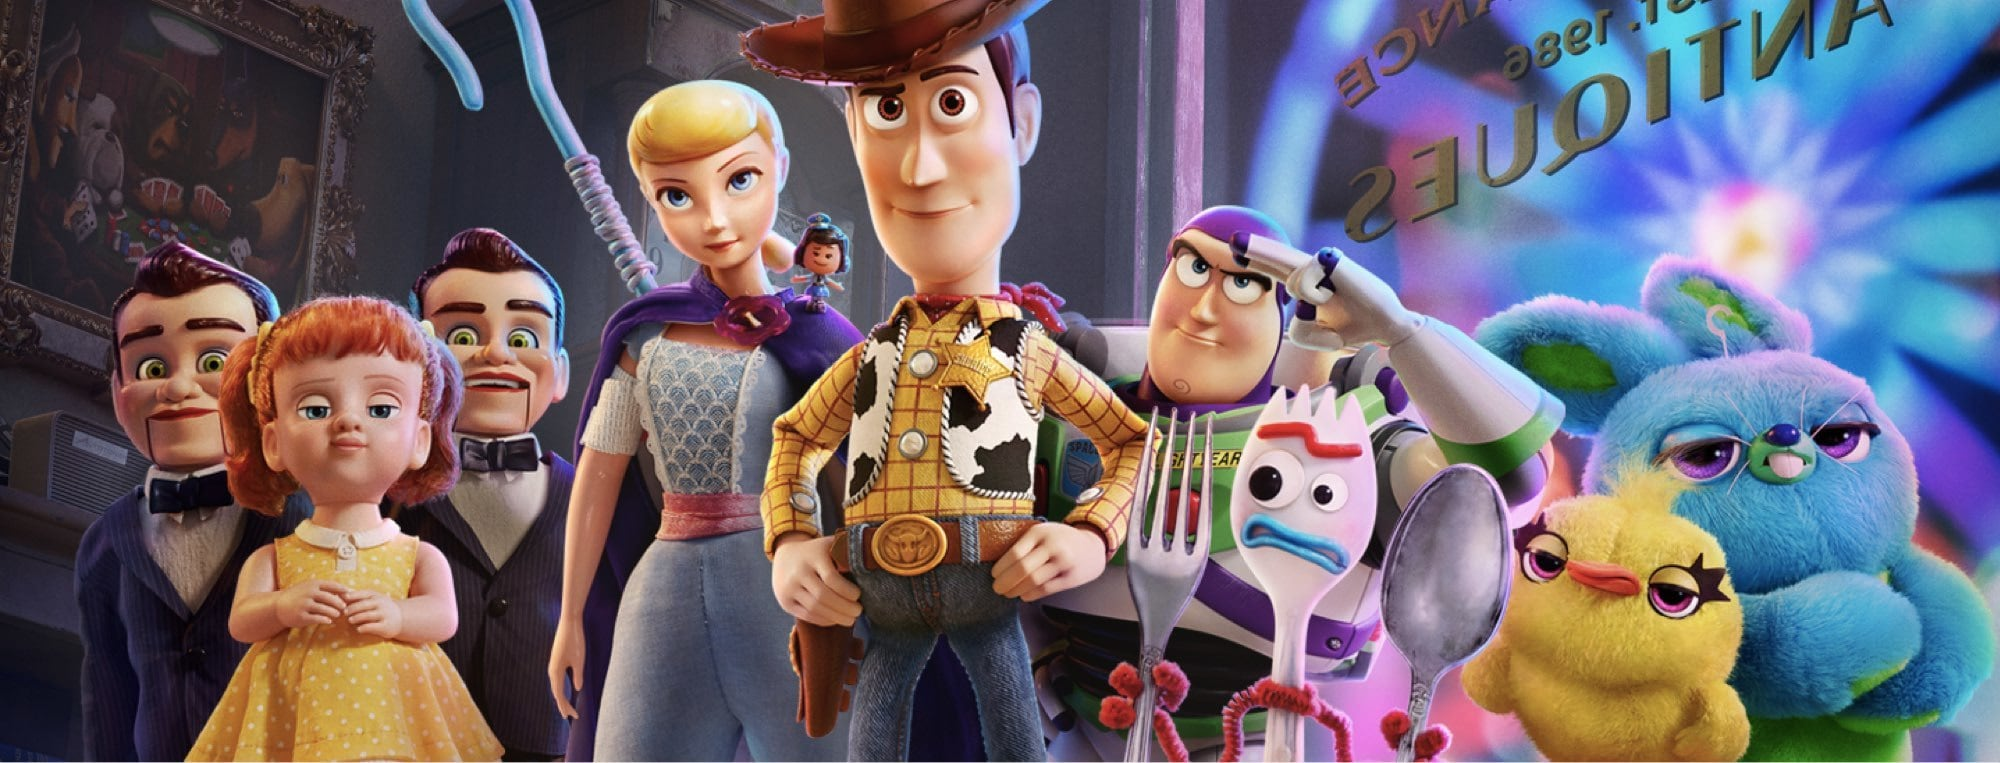 Toy Story 4 Meet The Characters Disney Uk